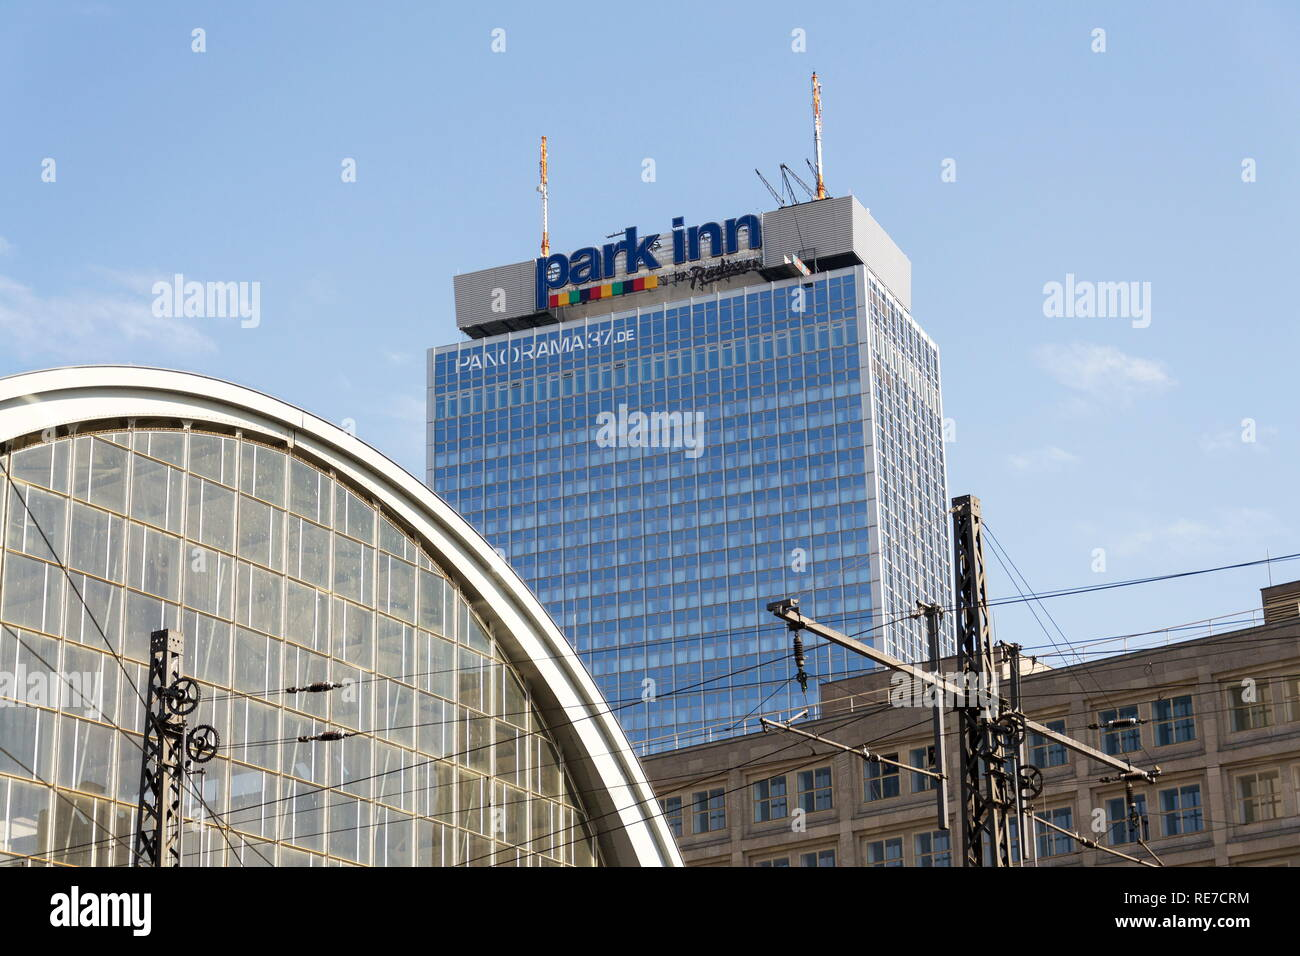 BERLIN, GERMANY - MAY 15 2018: Park Inn by Radisson Berlin Alexanderplazt hotels and resorts logo on the hotel building on May 15, 2018 in Berlin - Stock Image